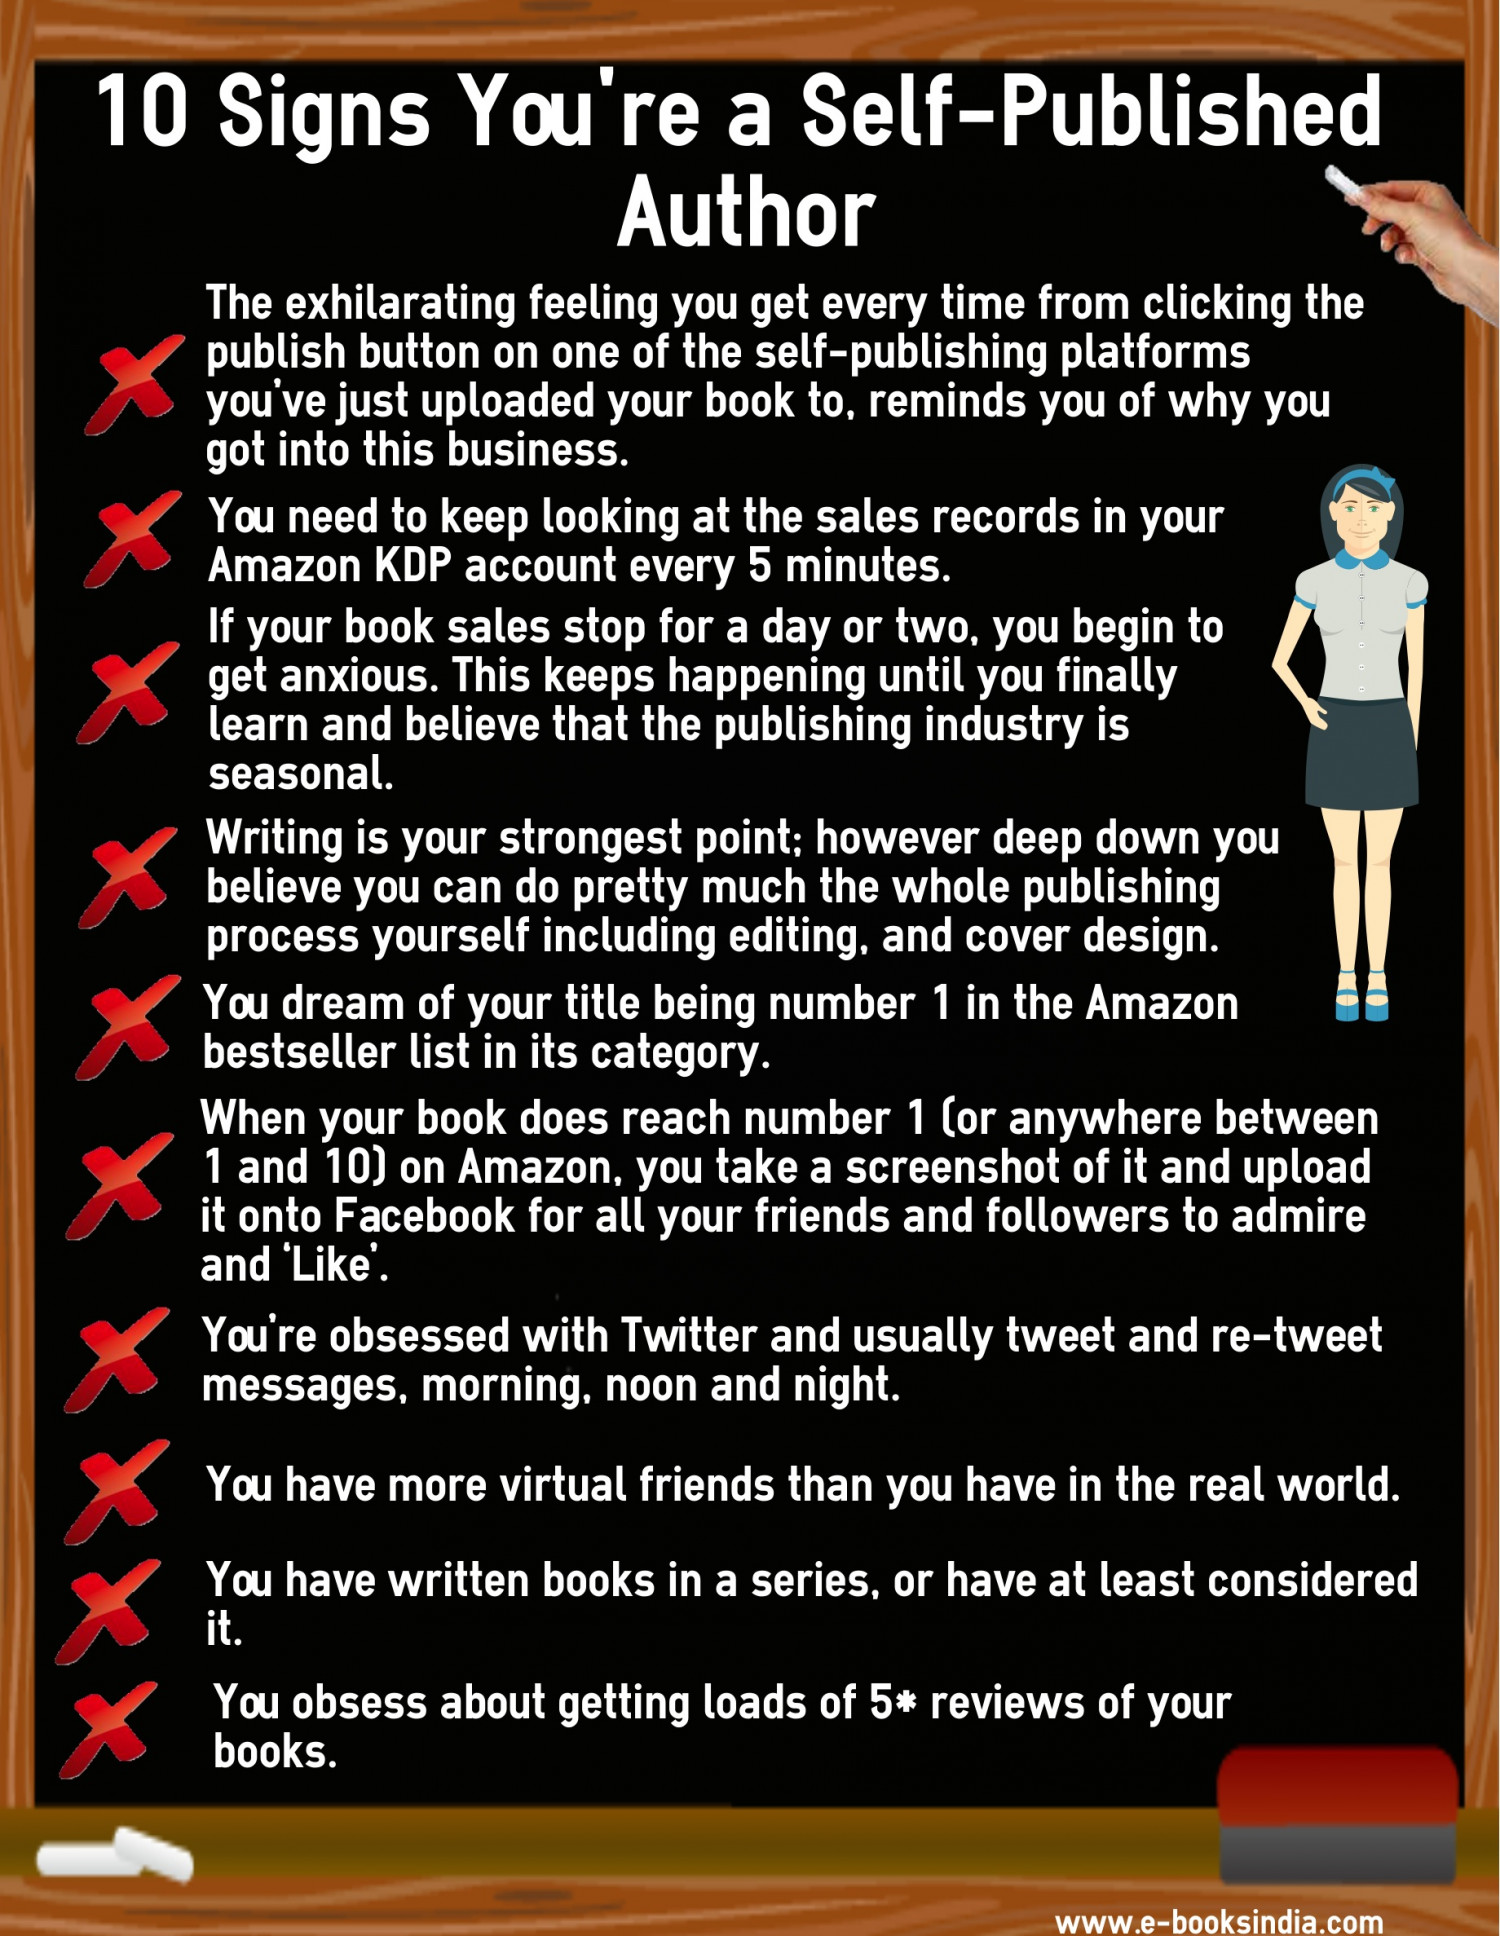 10 Signs You're a Self-Published Author Infographic